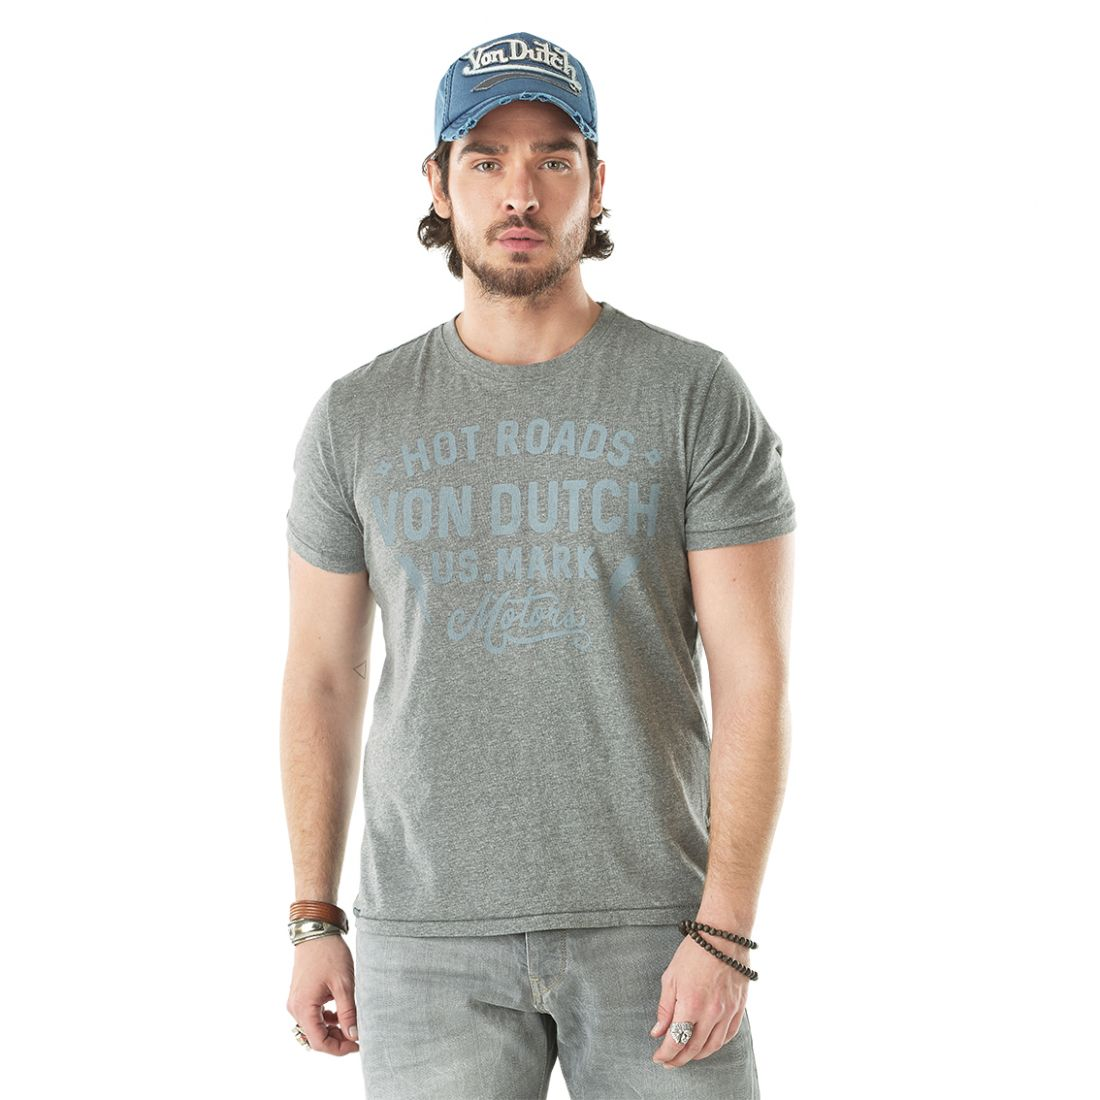 398c4030a74 T-shirt homme Von Dutch Angeles Anthracite Col Rond